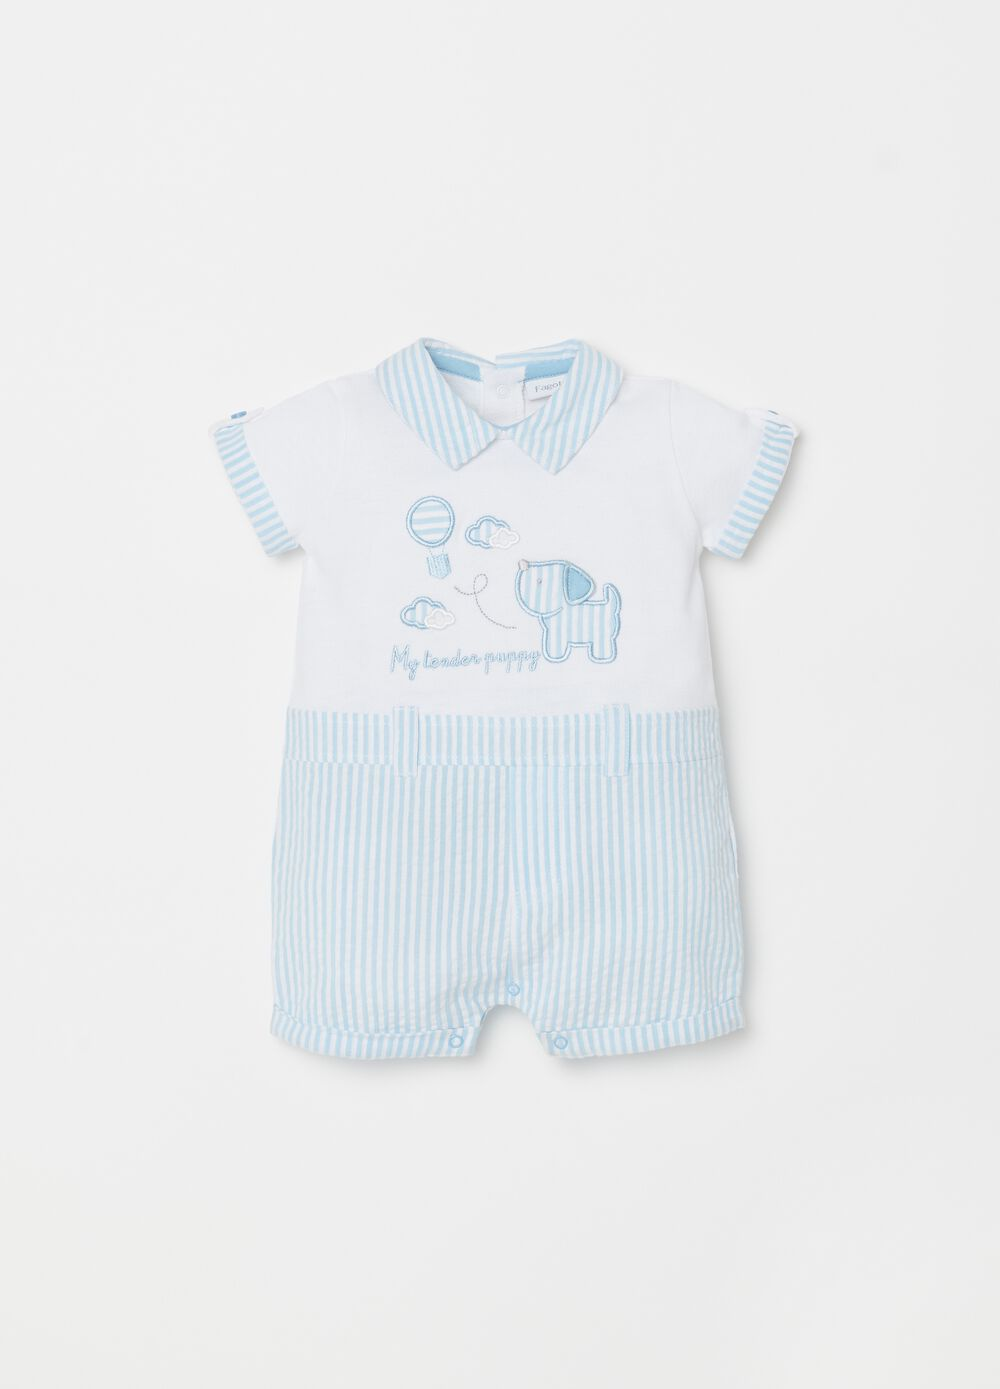 Romper suit with applications and striped pattern